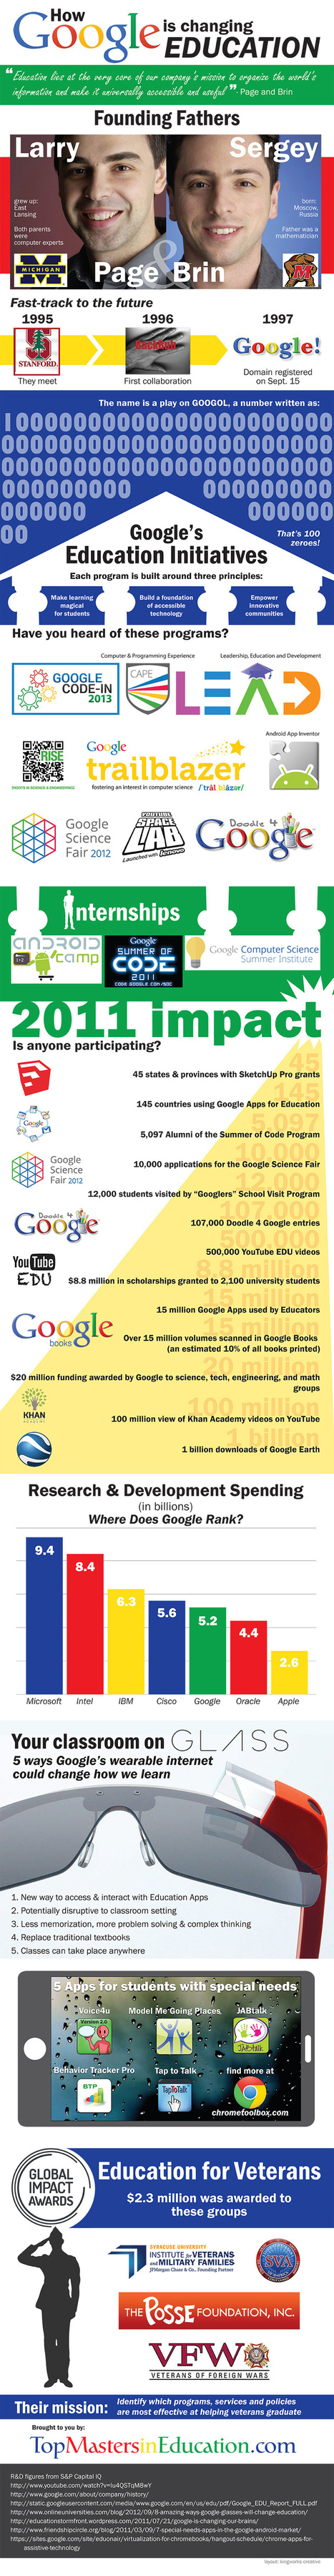 Google's Impact on Education | Innovación y Emprendimiento | Scoop.it